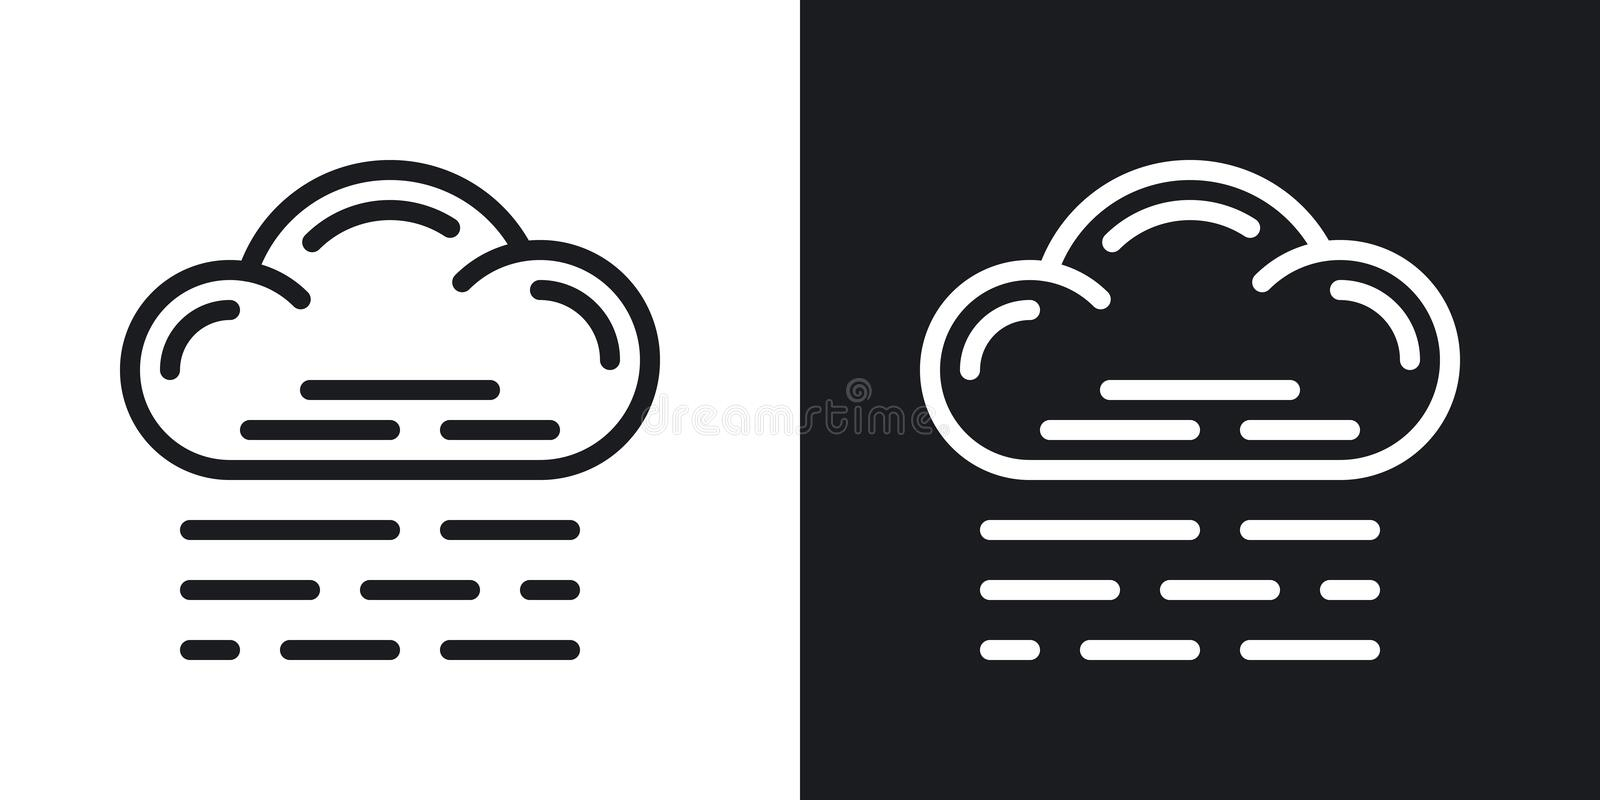 Fog, mist or haze icon for weather forecast application or widget. Two-tone version on black and white background. Fog, mist or haze icon for weather forecast royalty free illustration